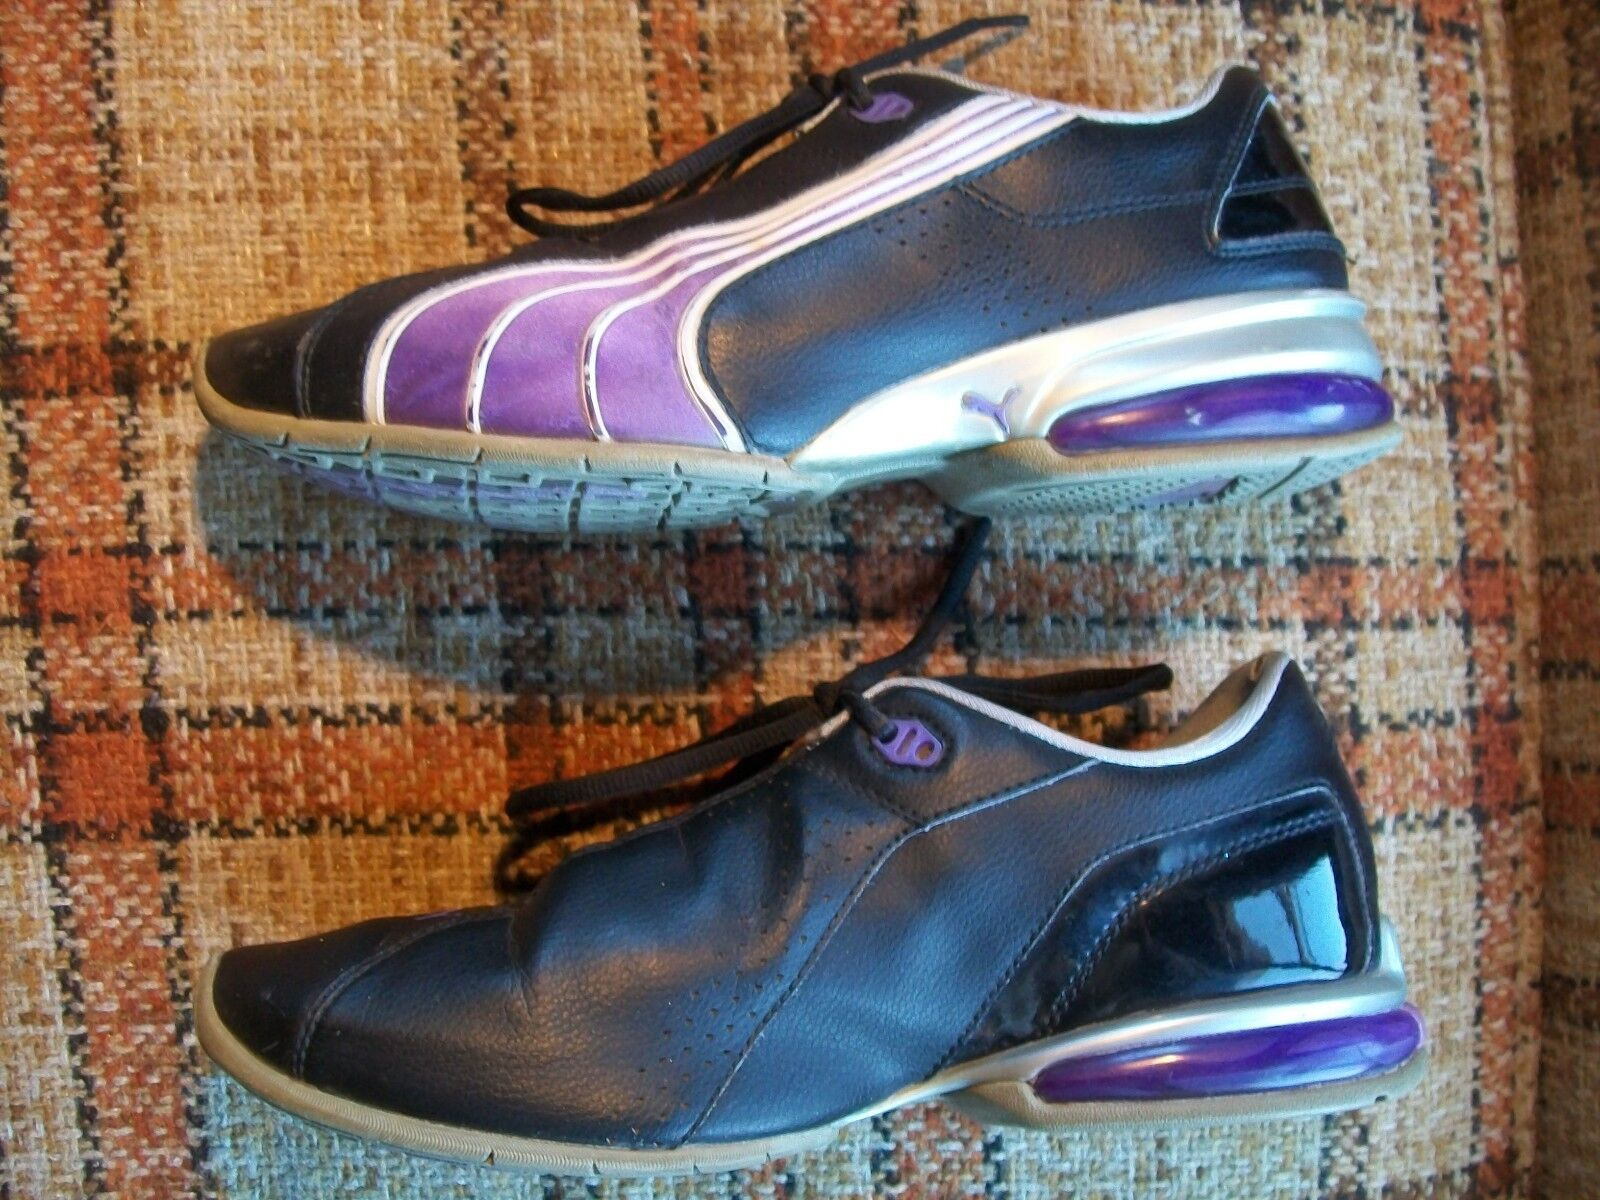 Puma Black Womens Size 9 () Black Puma Purple Shoes 185263 03 32eefa